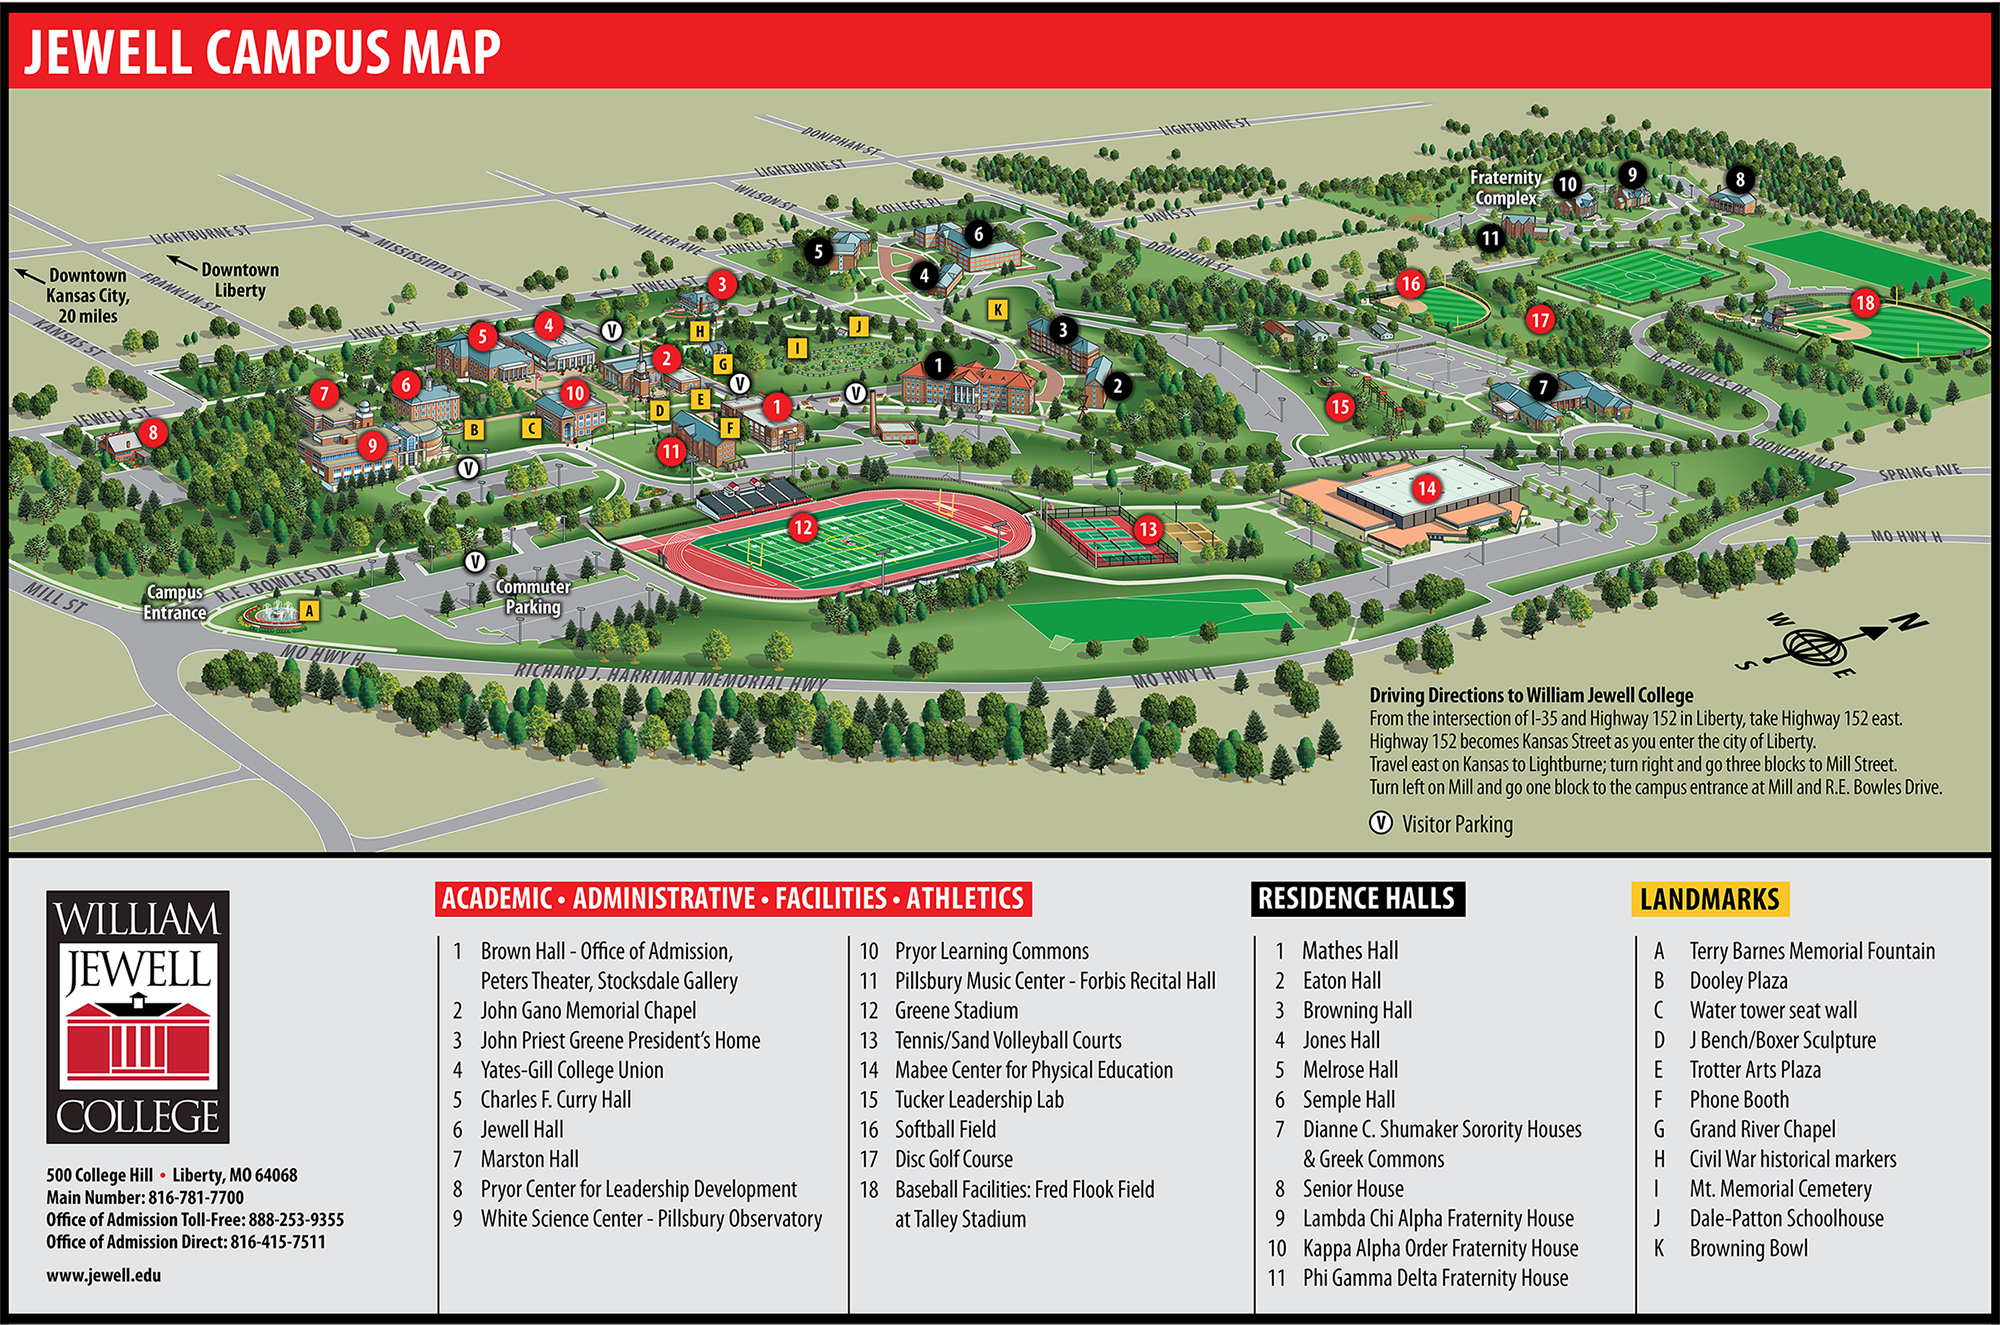 Campus map of William Jewell College